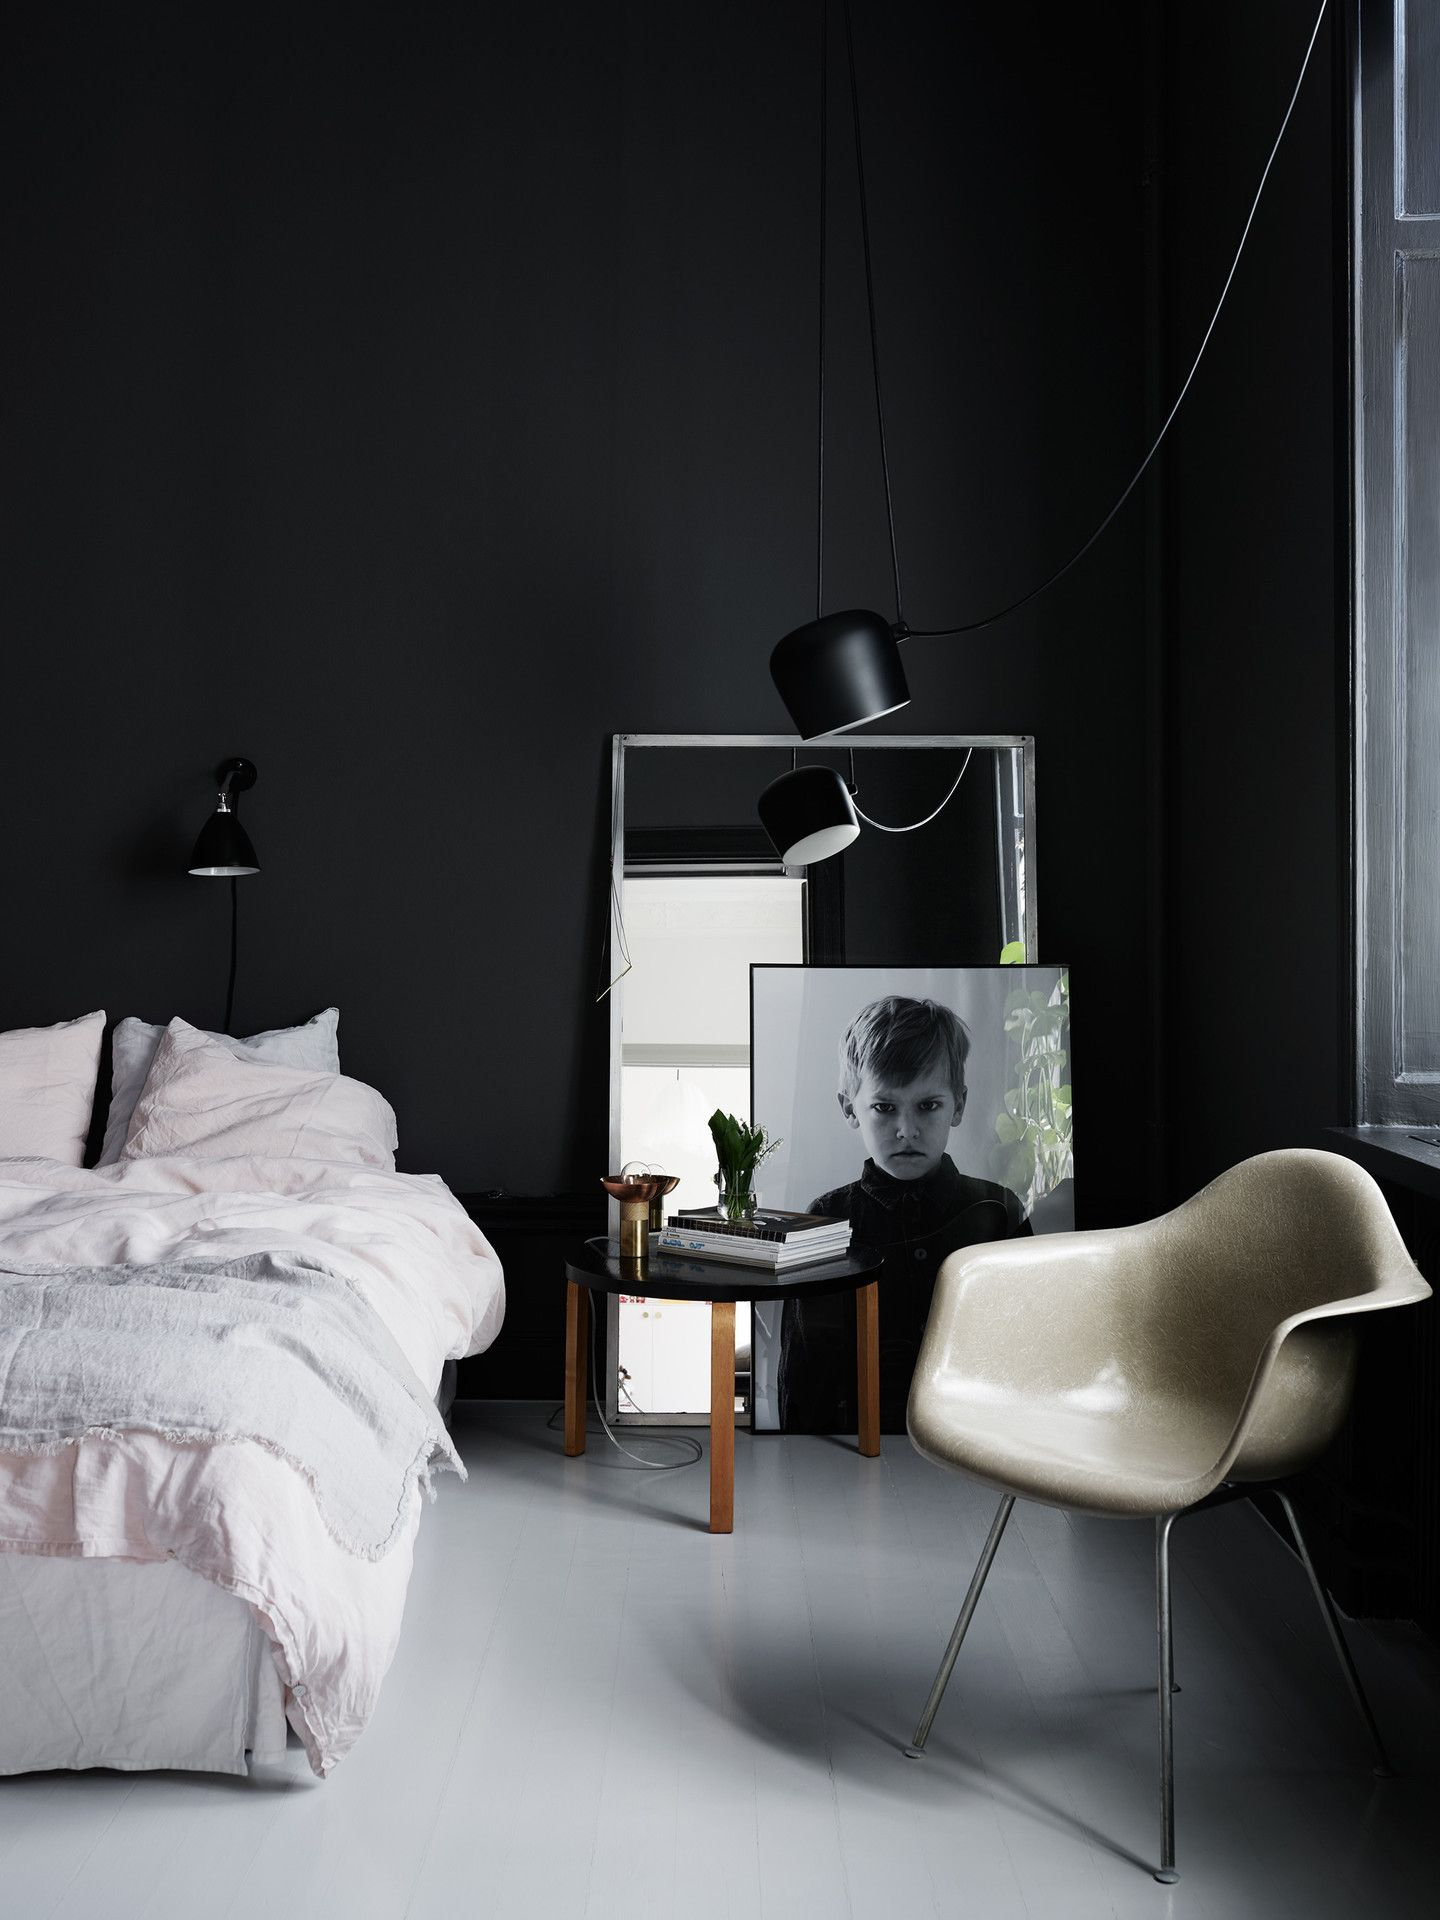 44 Striking Black White Room Ideas How To Use Decor And Walls